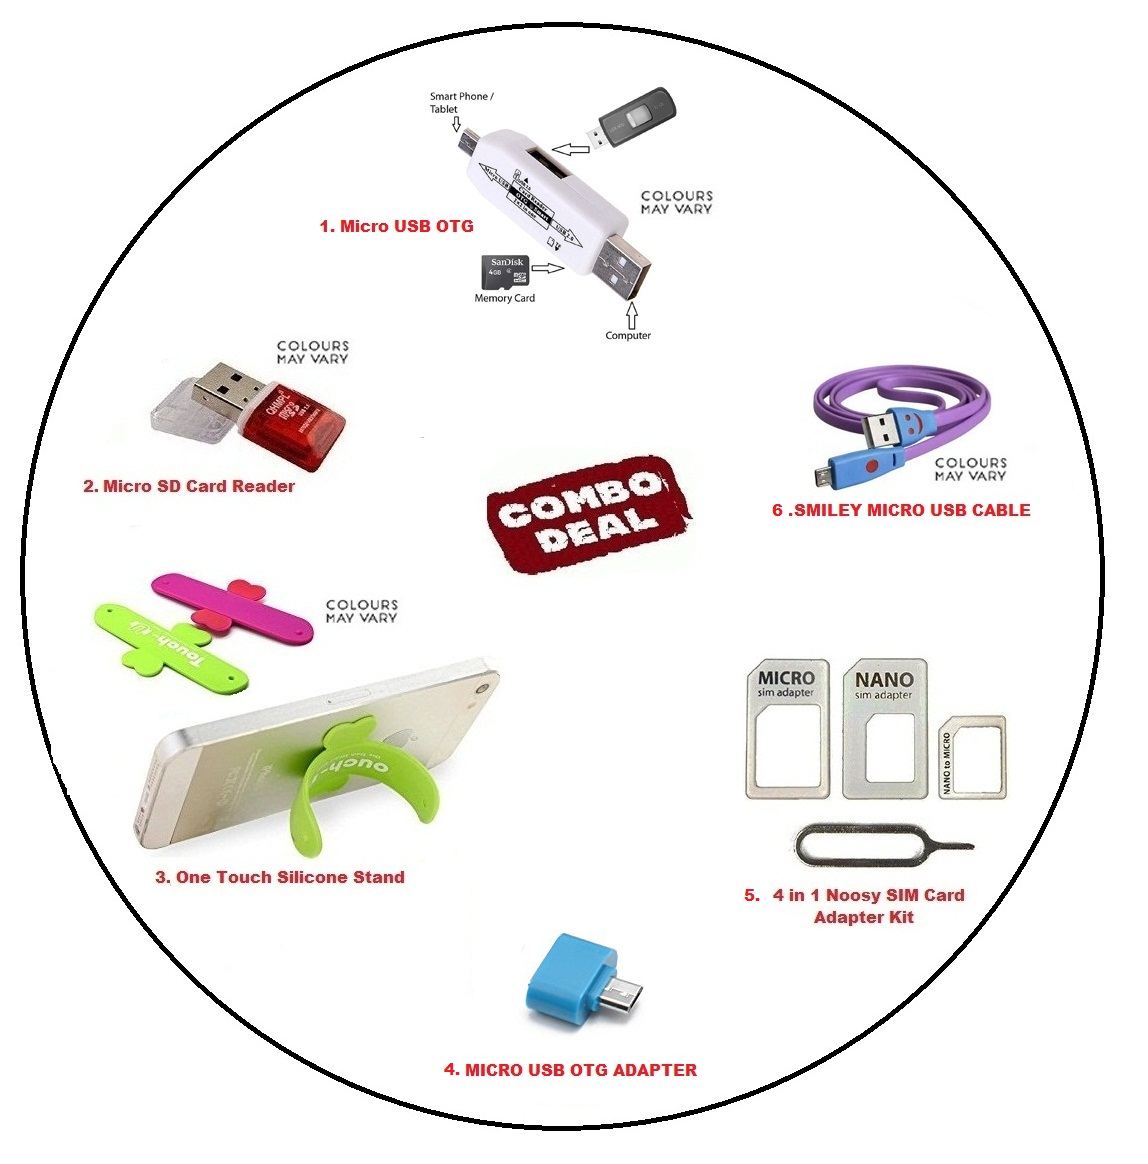 PACK OF 6   CARD READER + MICRO SD CARD READER+ONE TOUCH SILICONE STAND + OTG ADAPTER + NANO SIM ADAPTER + SMILEY CABLE